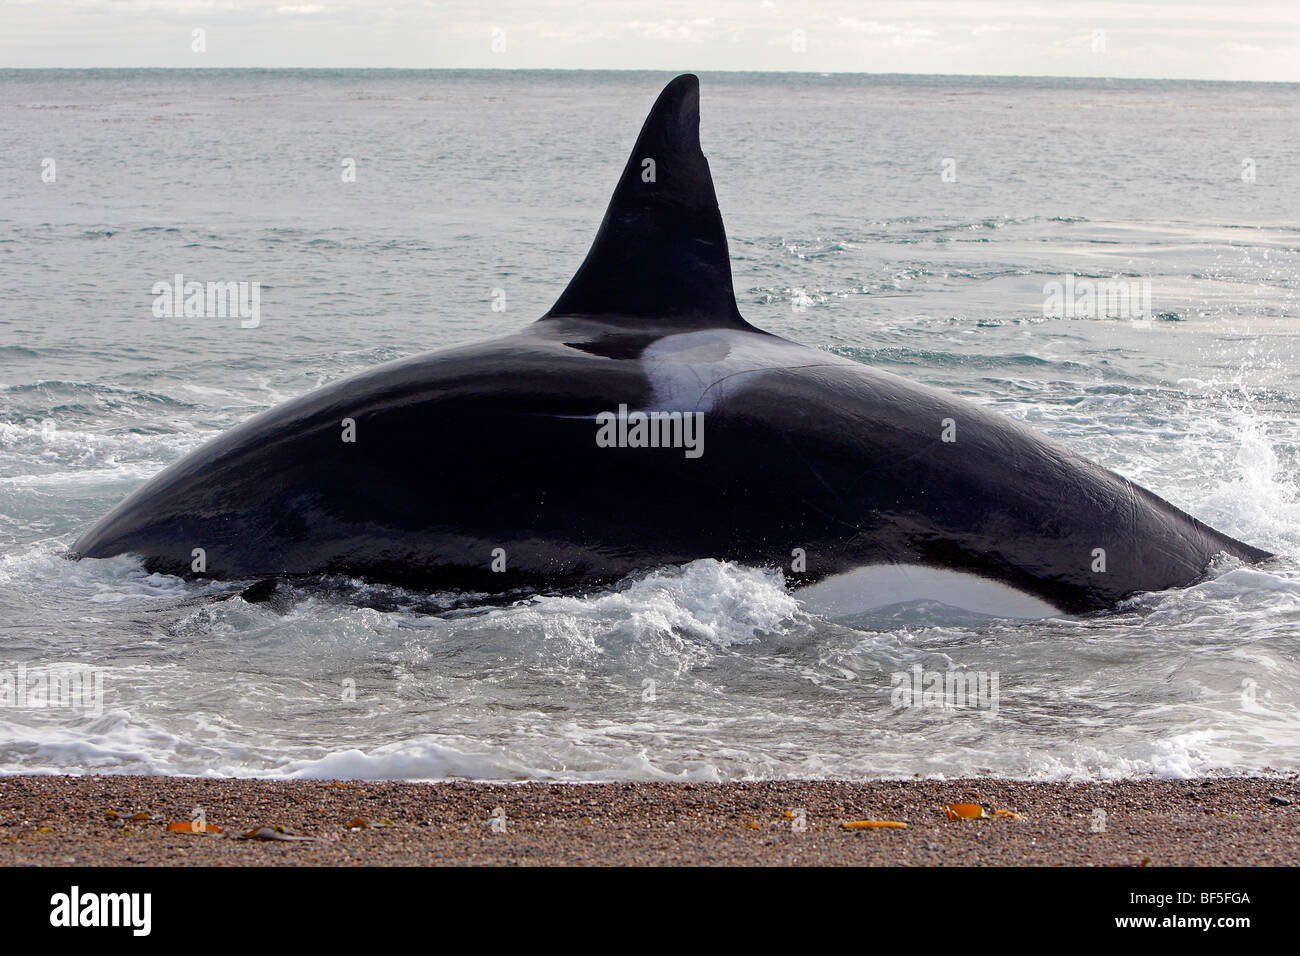 Attacking Whale Stock Photos & Attacking Whale Stock Images